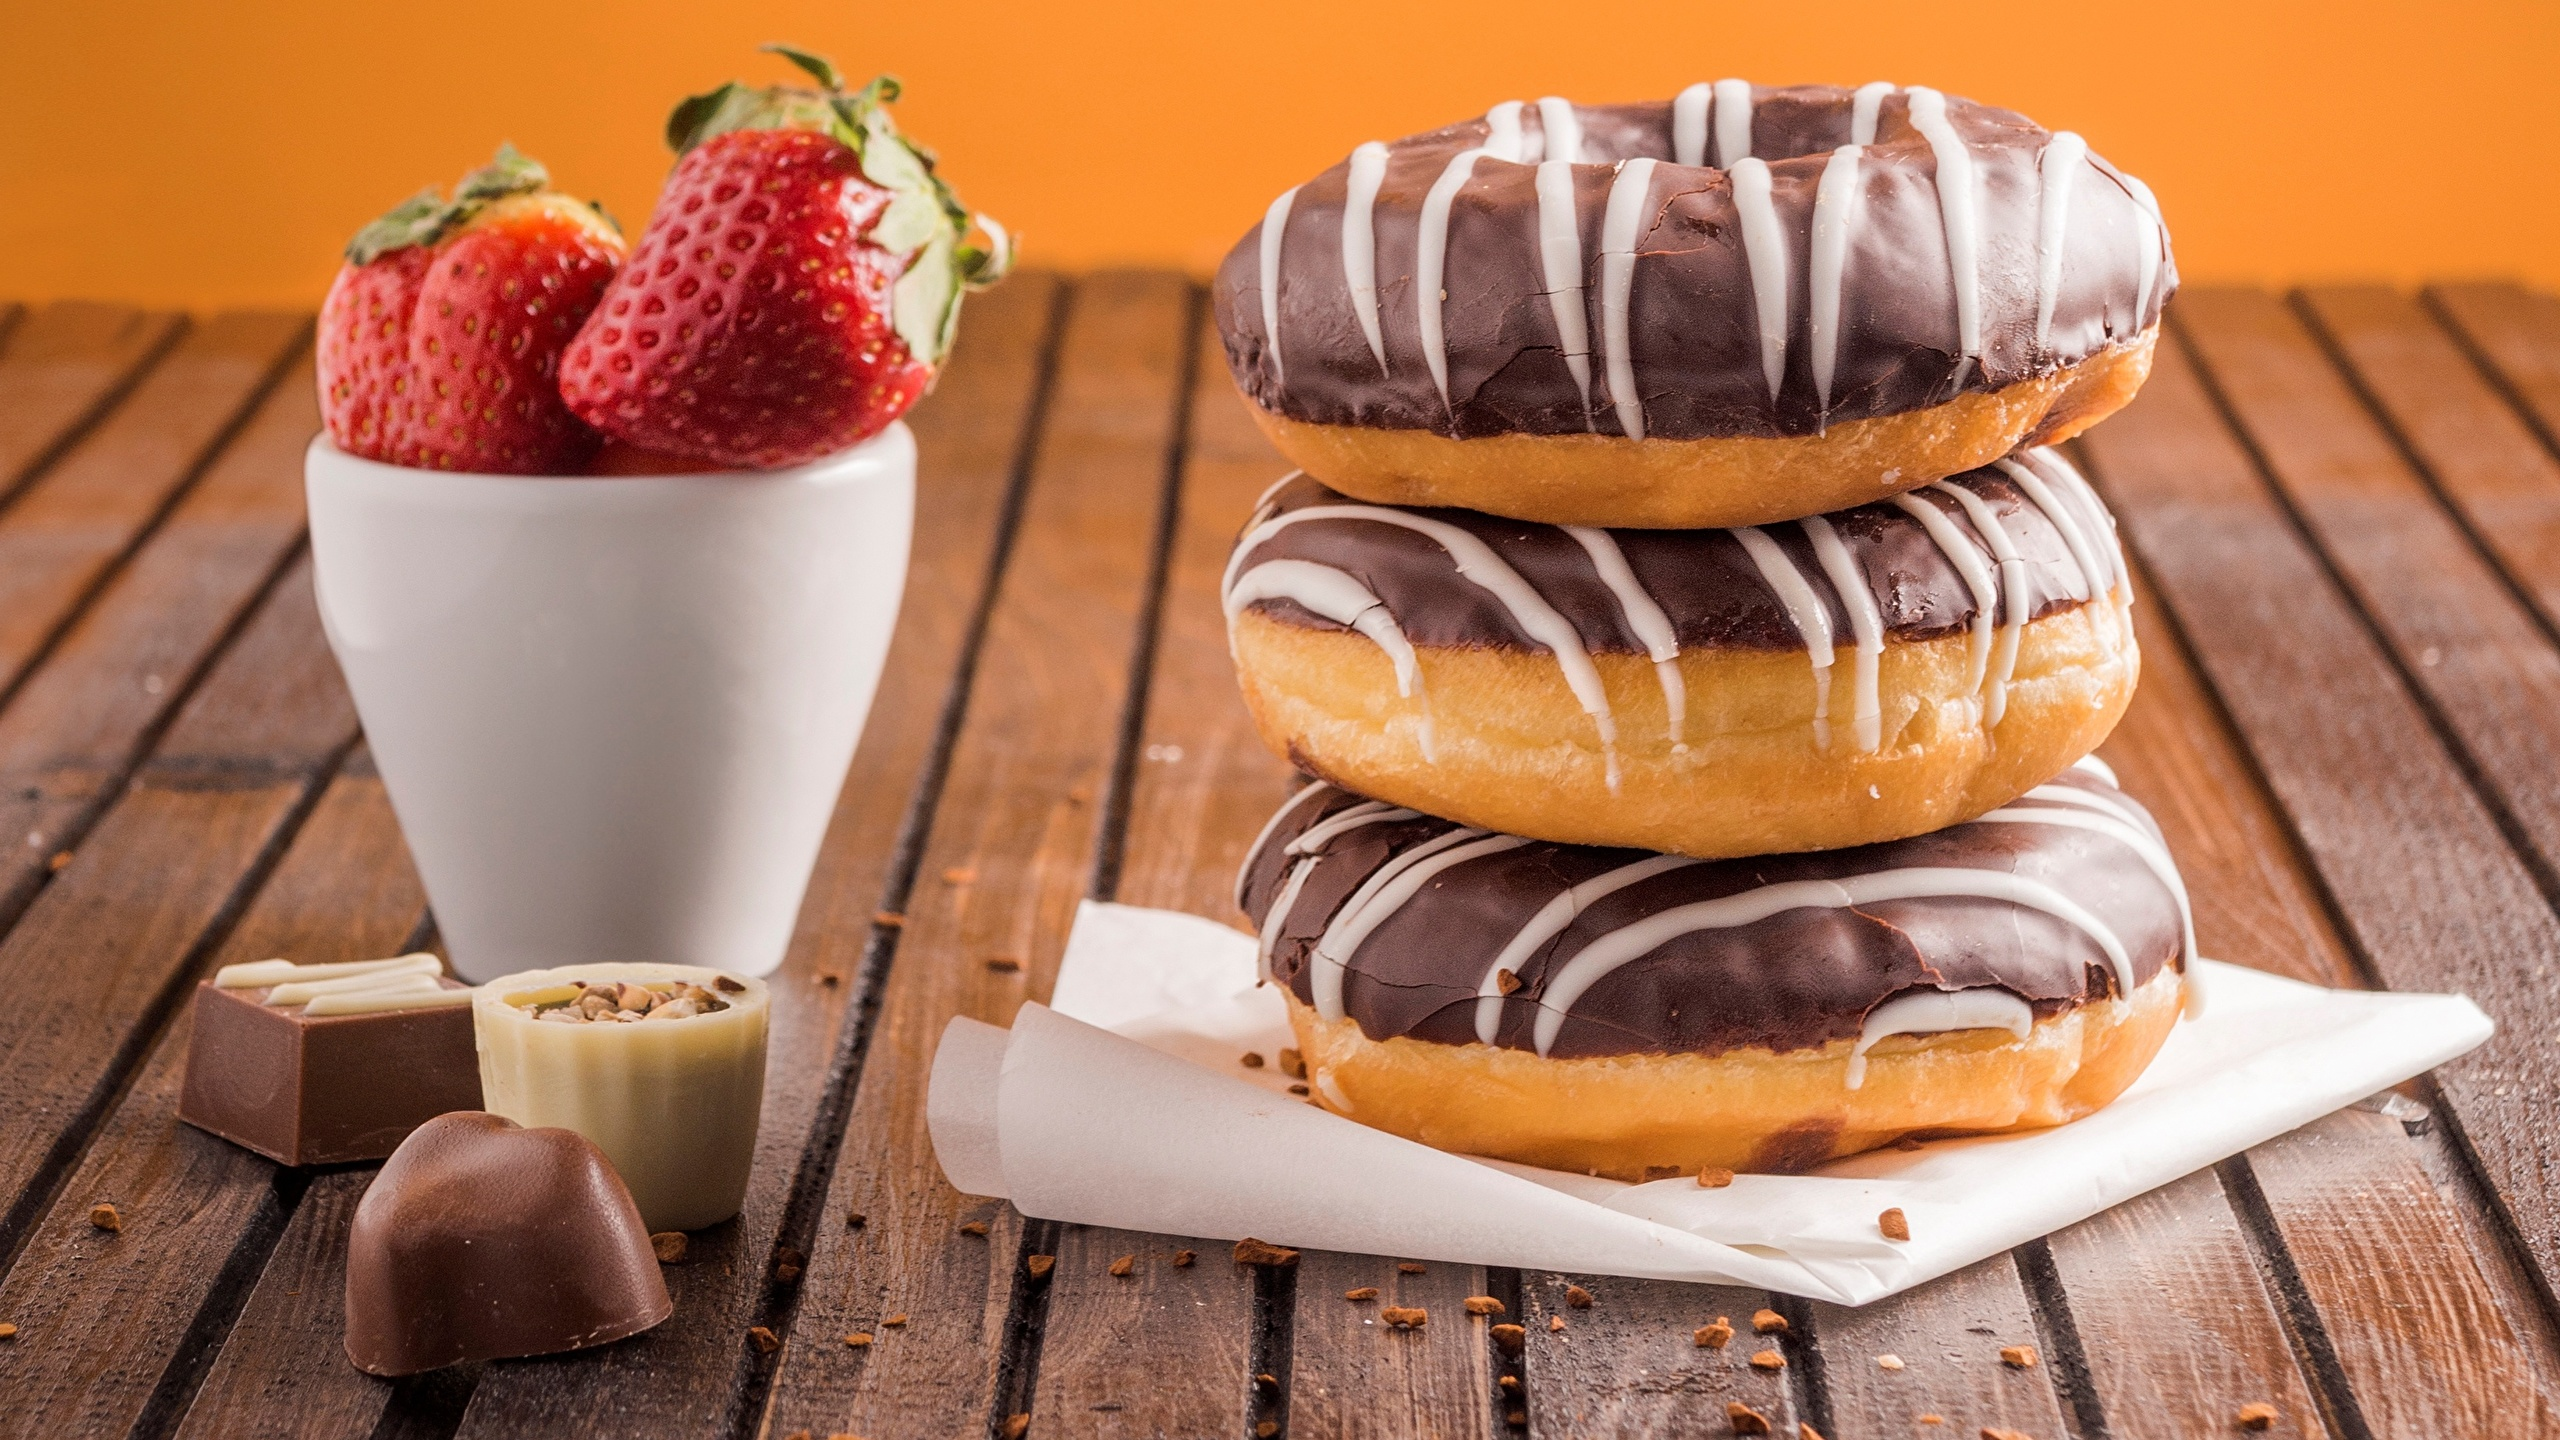 Pictures Chocolate Candy Donuts Strawberry Food 2560x1440 Doughnut